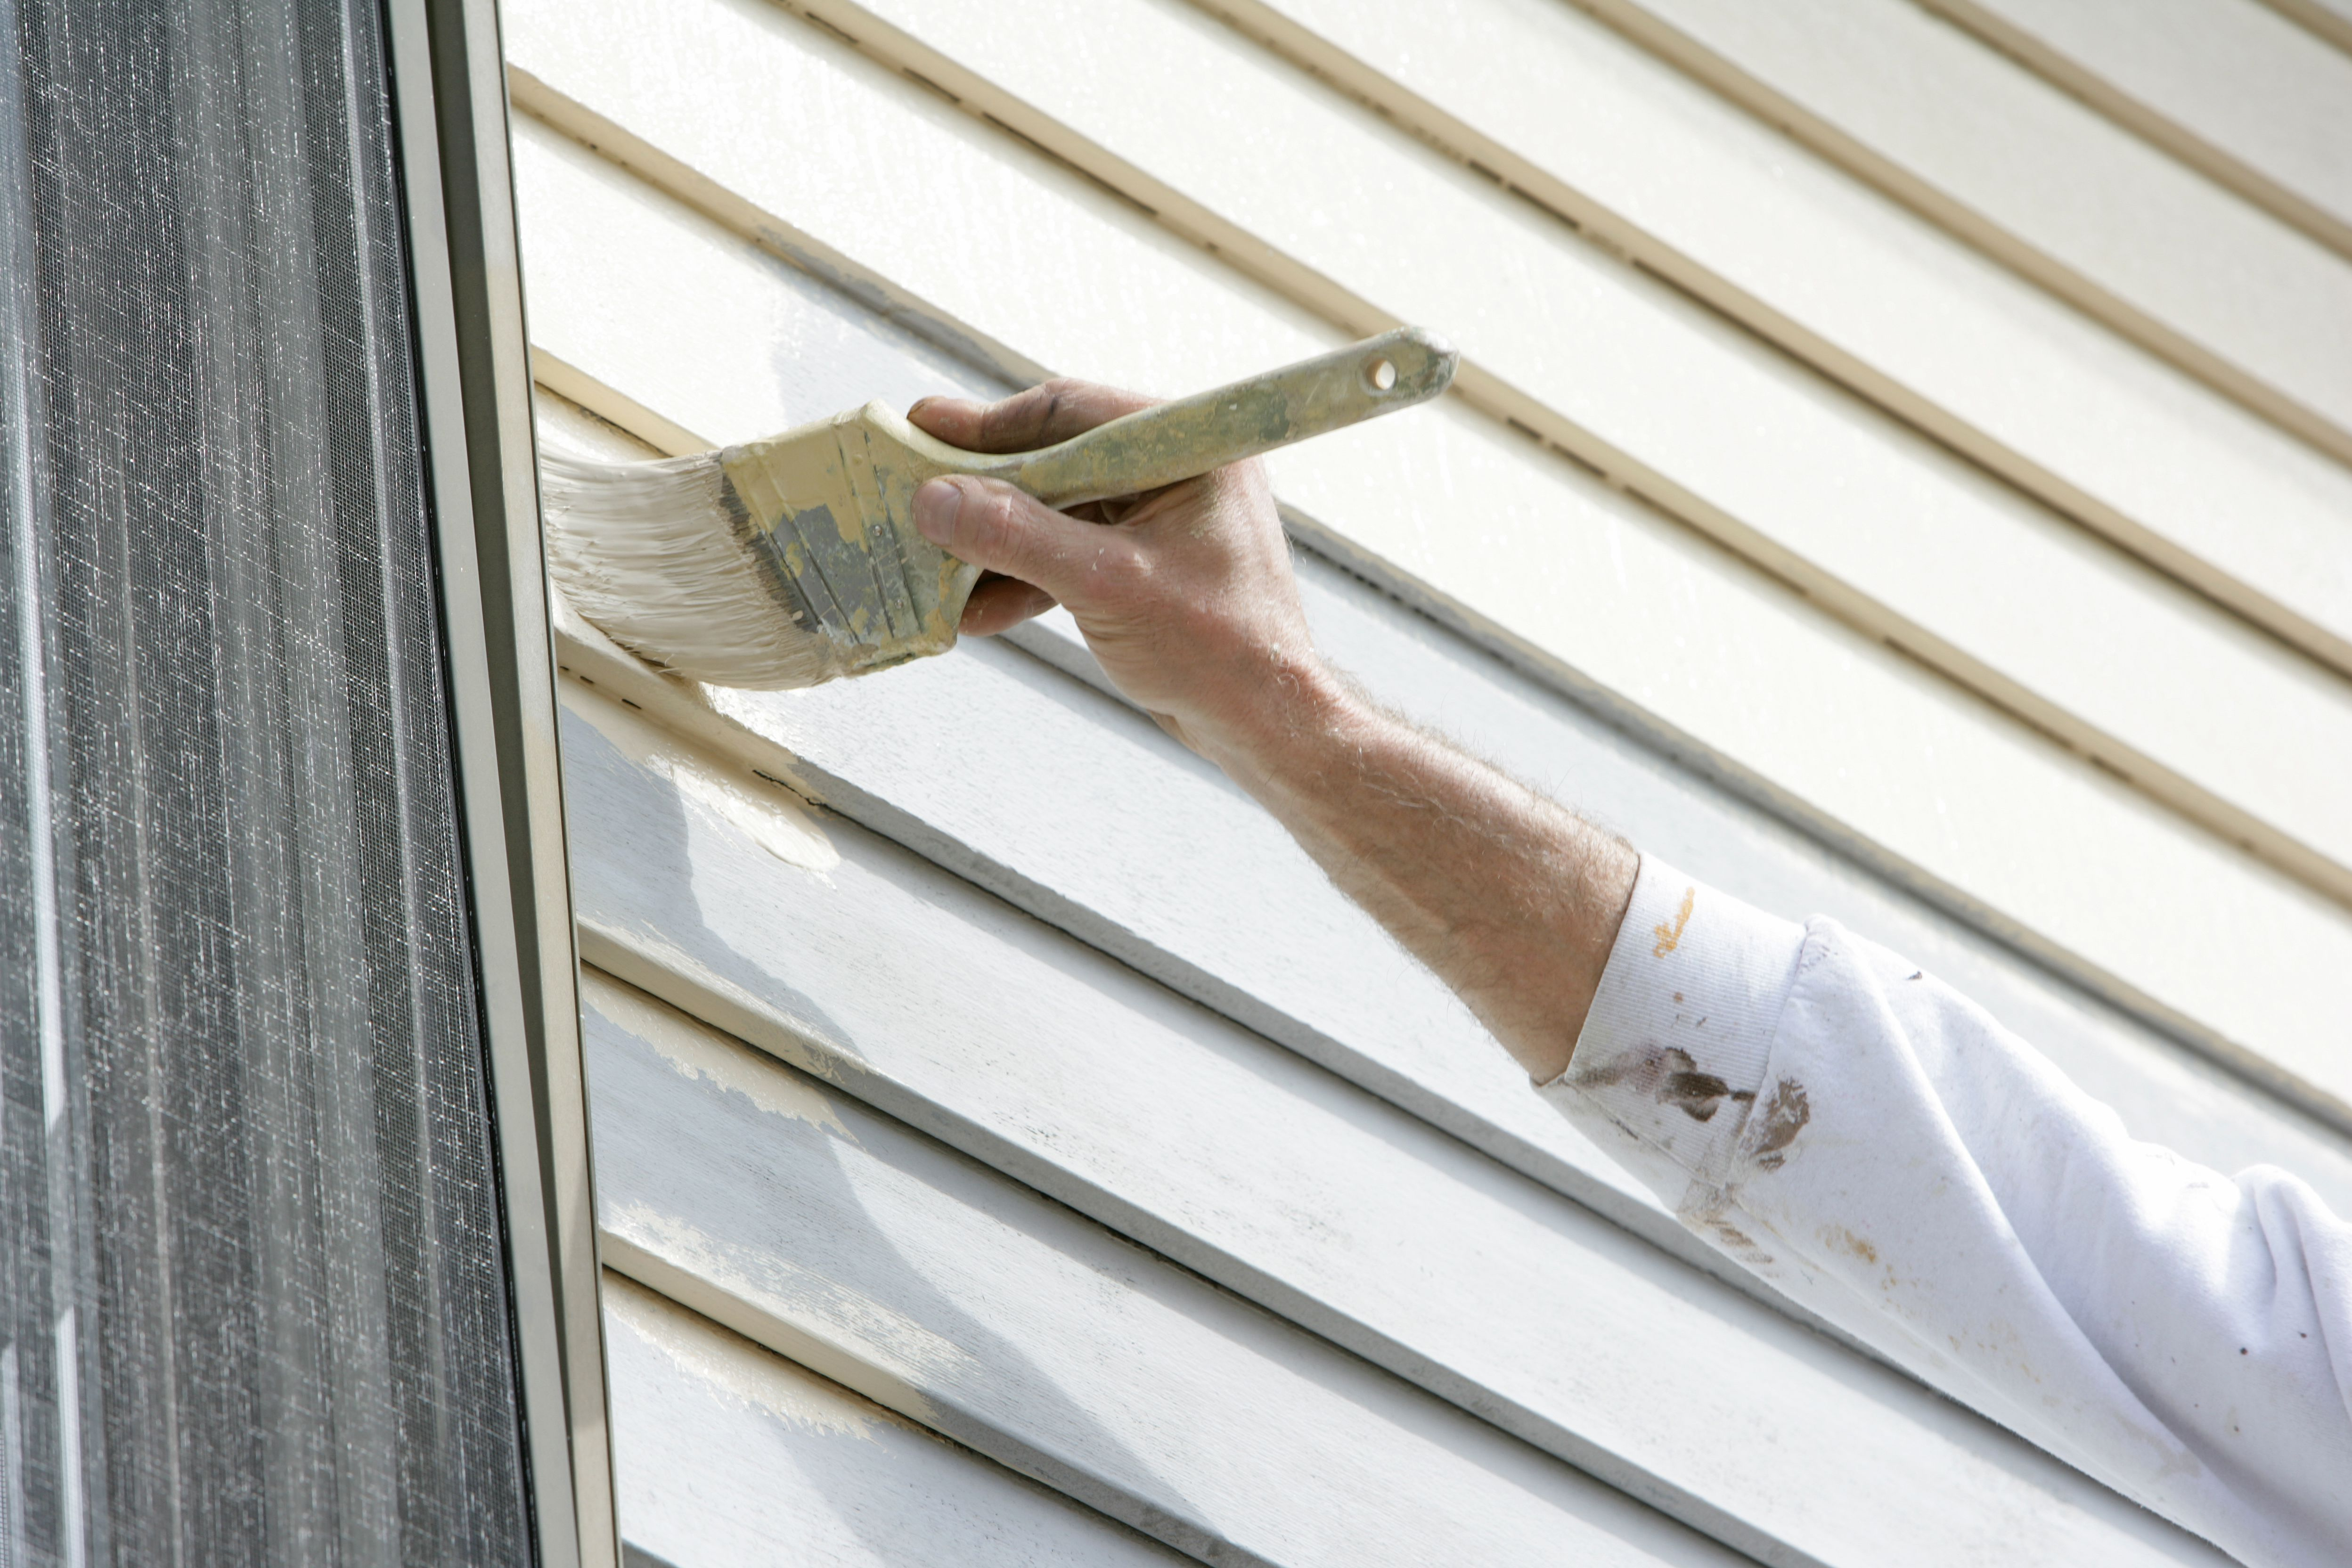 Vinyl siding repair tape - Yes You Can Paint Vinyl Siding If You Do It Right